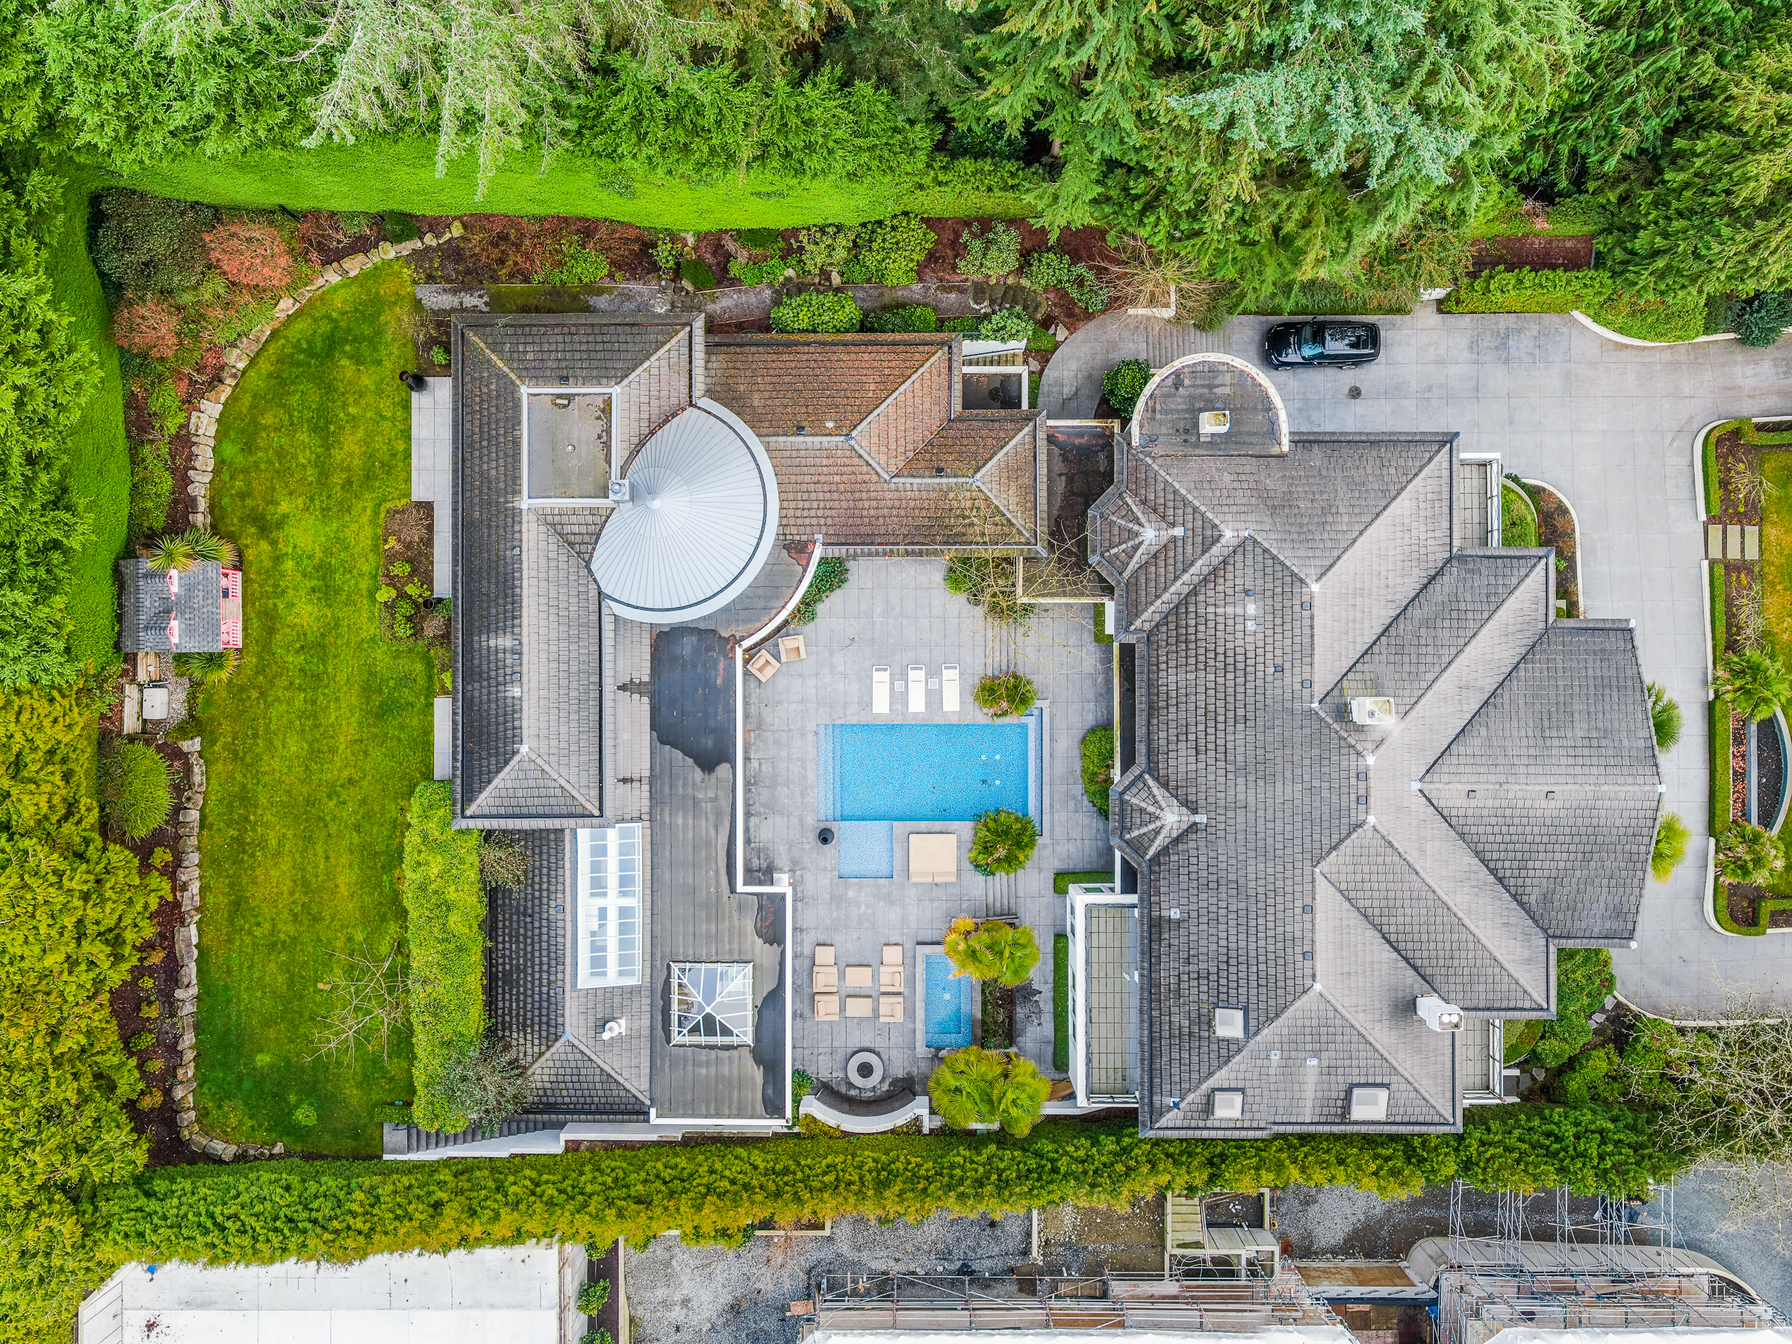 49401669981_1ec1f64849_o at 2929 Mathers Avenue, Altamont, West Vancouver